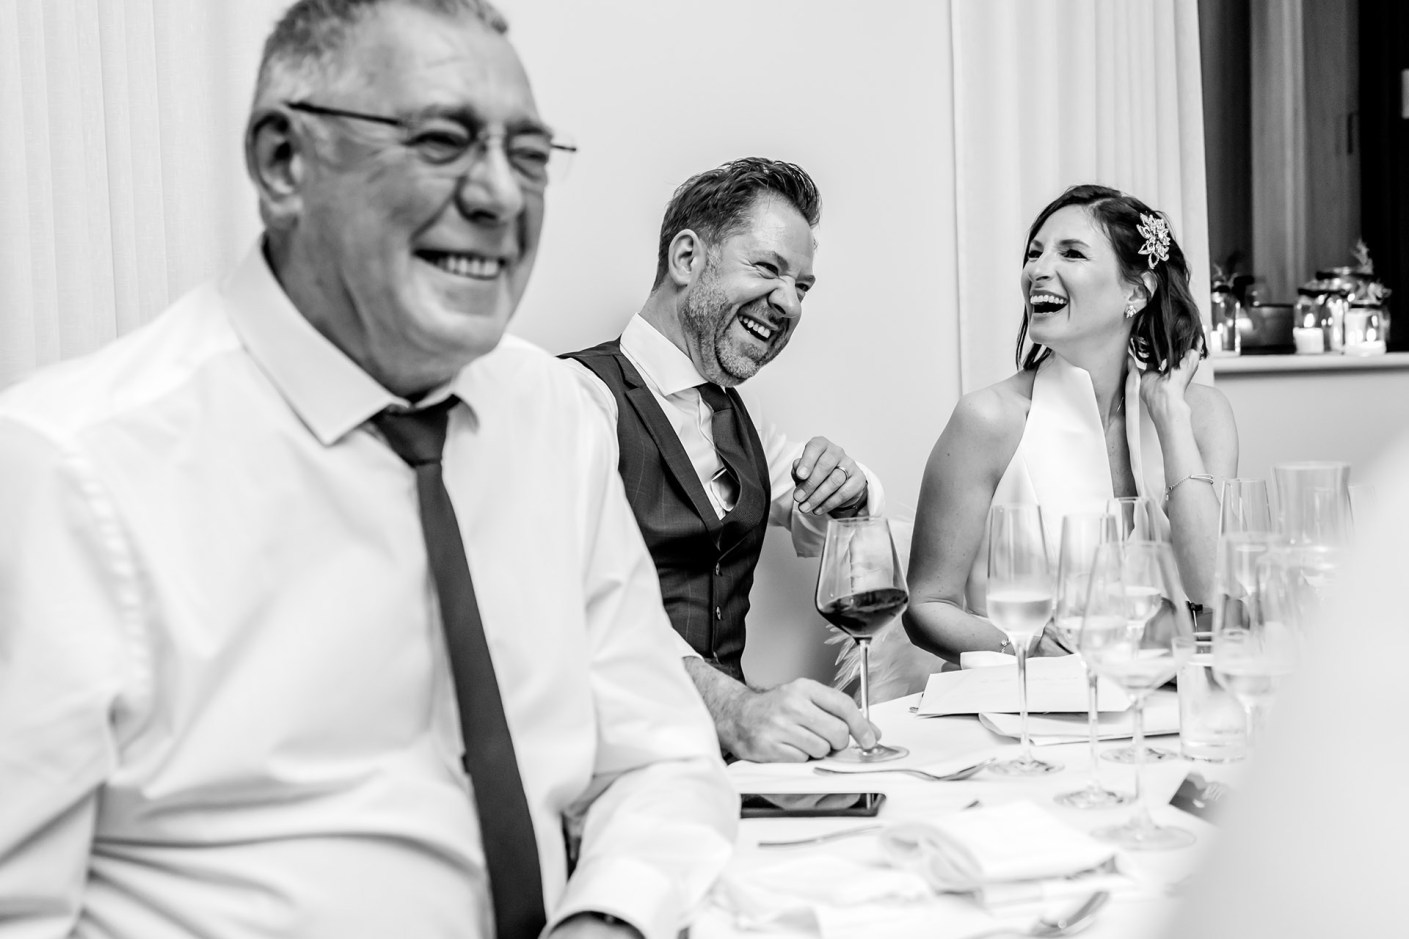 laughing at the speeches